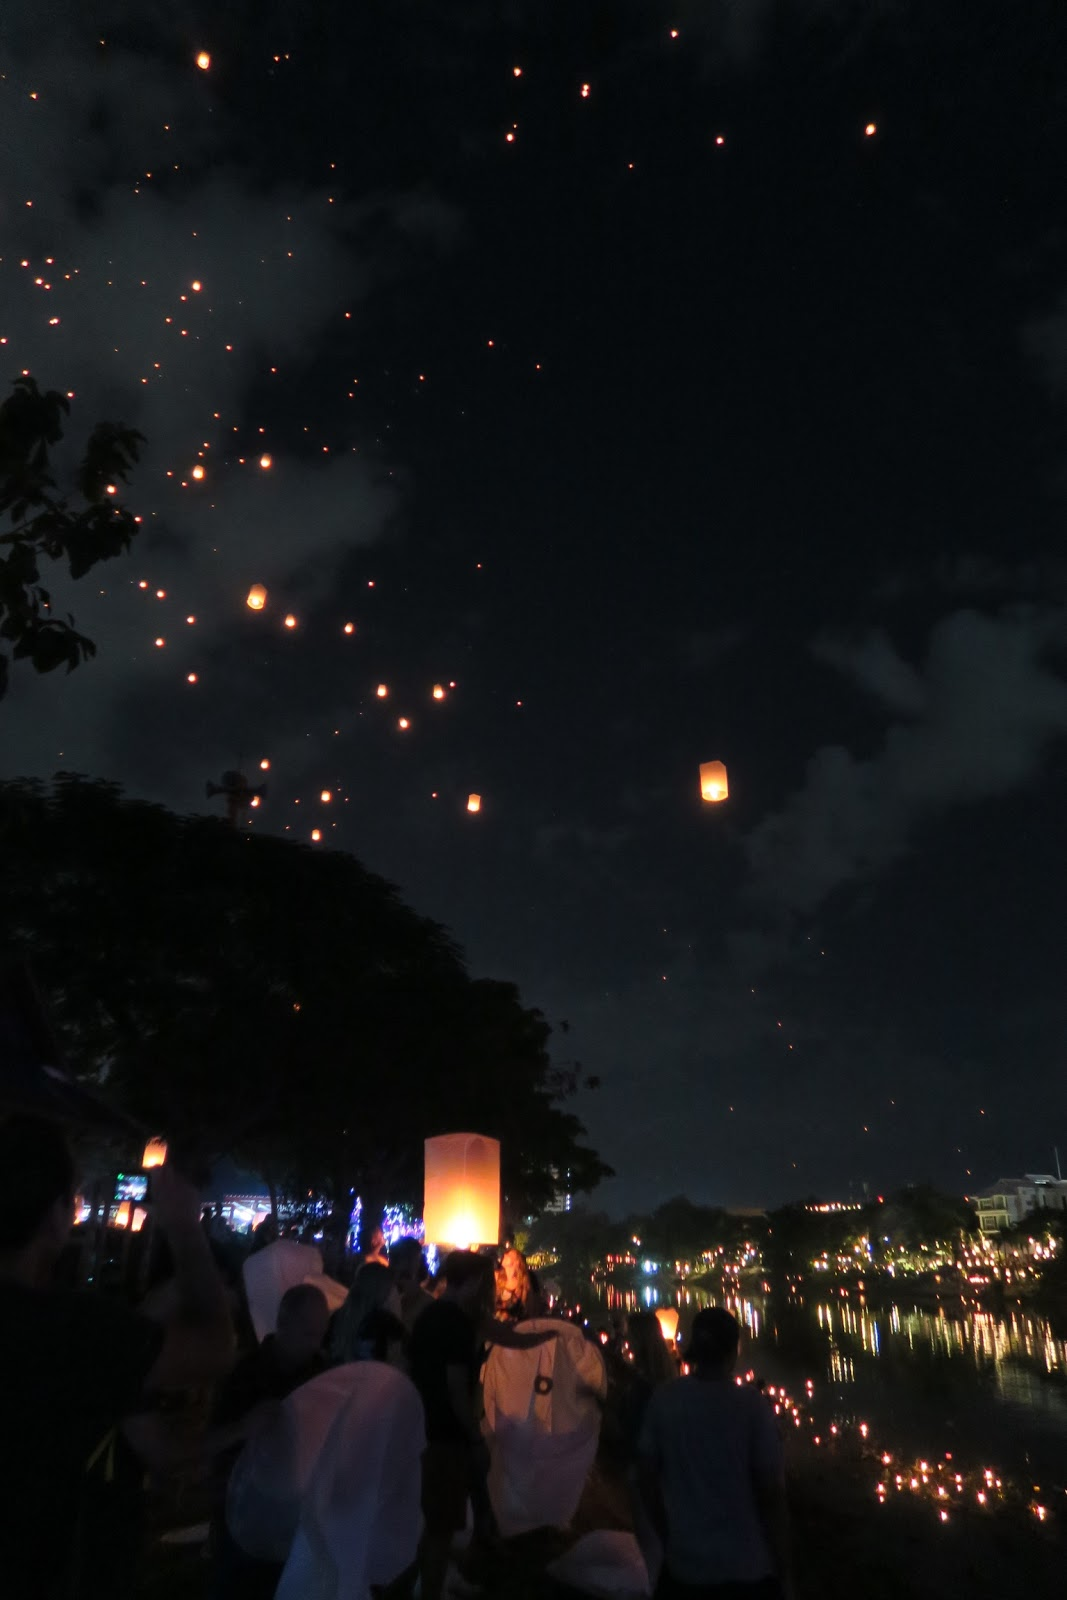 Lanterns fill the sky like stars during the Yi Peng festival in Chiang Mai